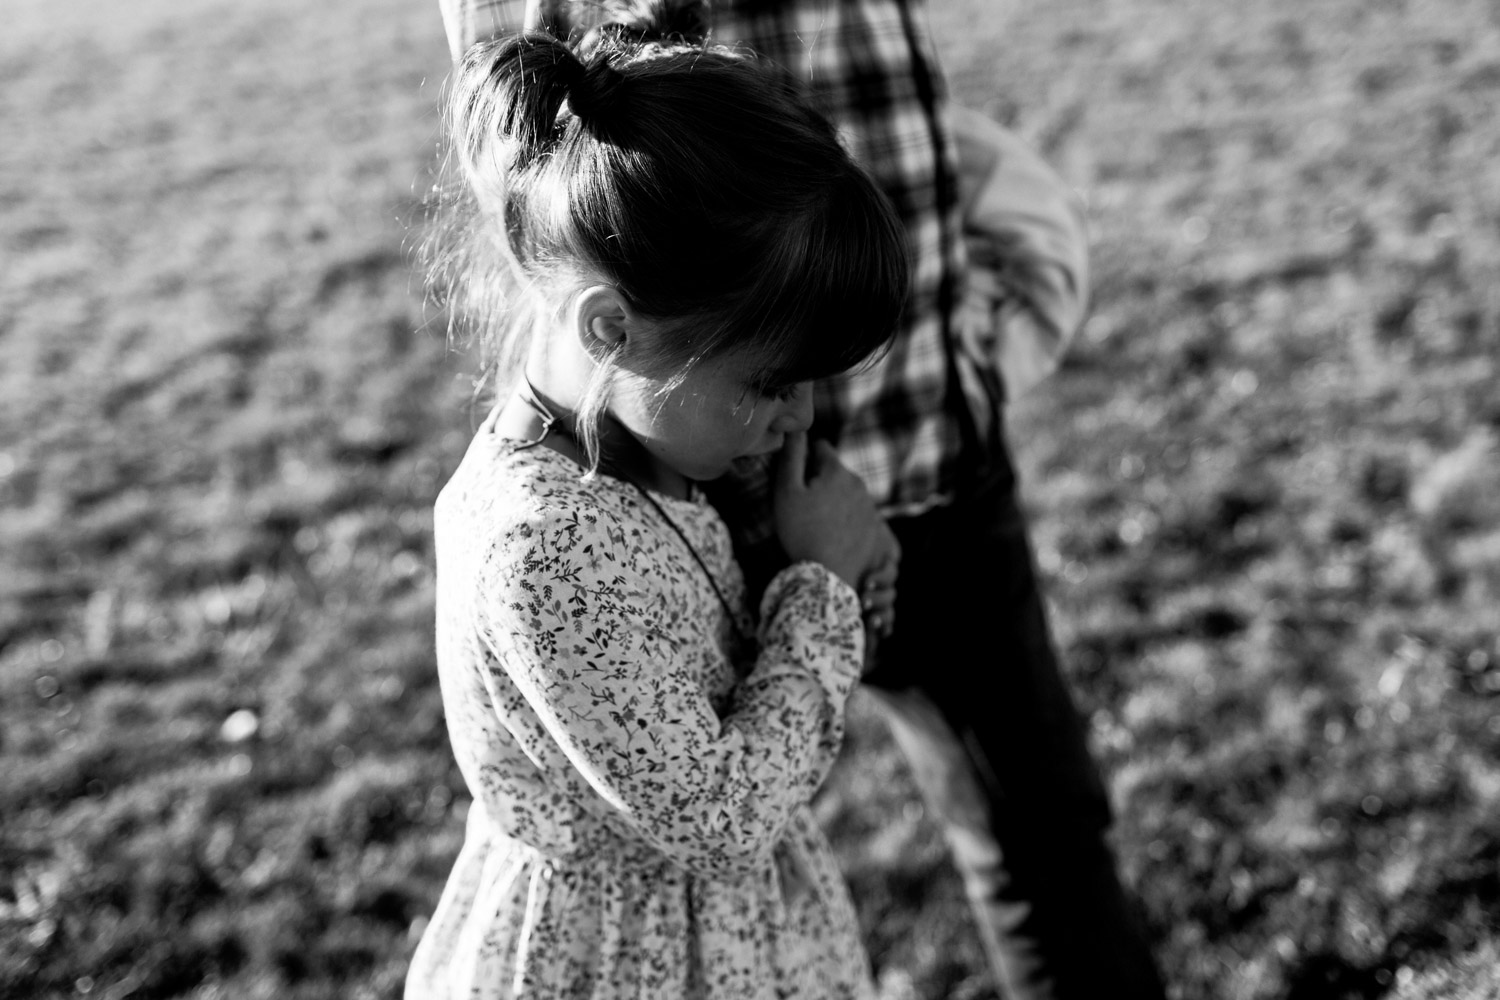 Child walking in embrace of her father, black and white portrait